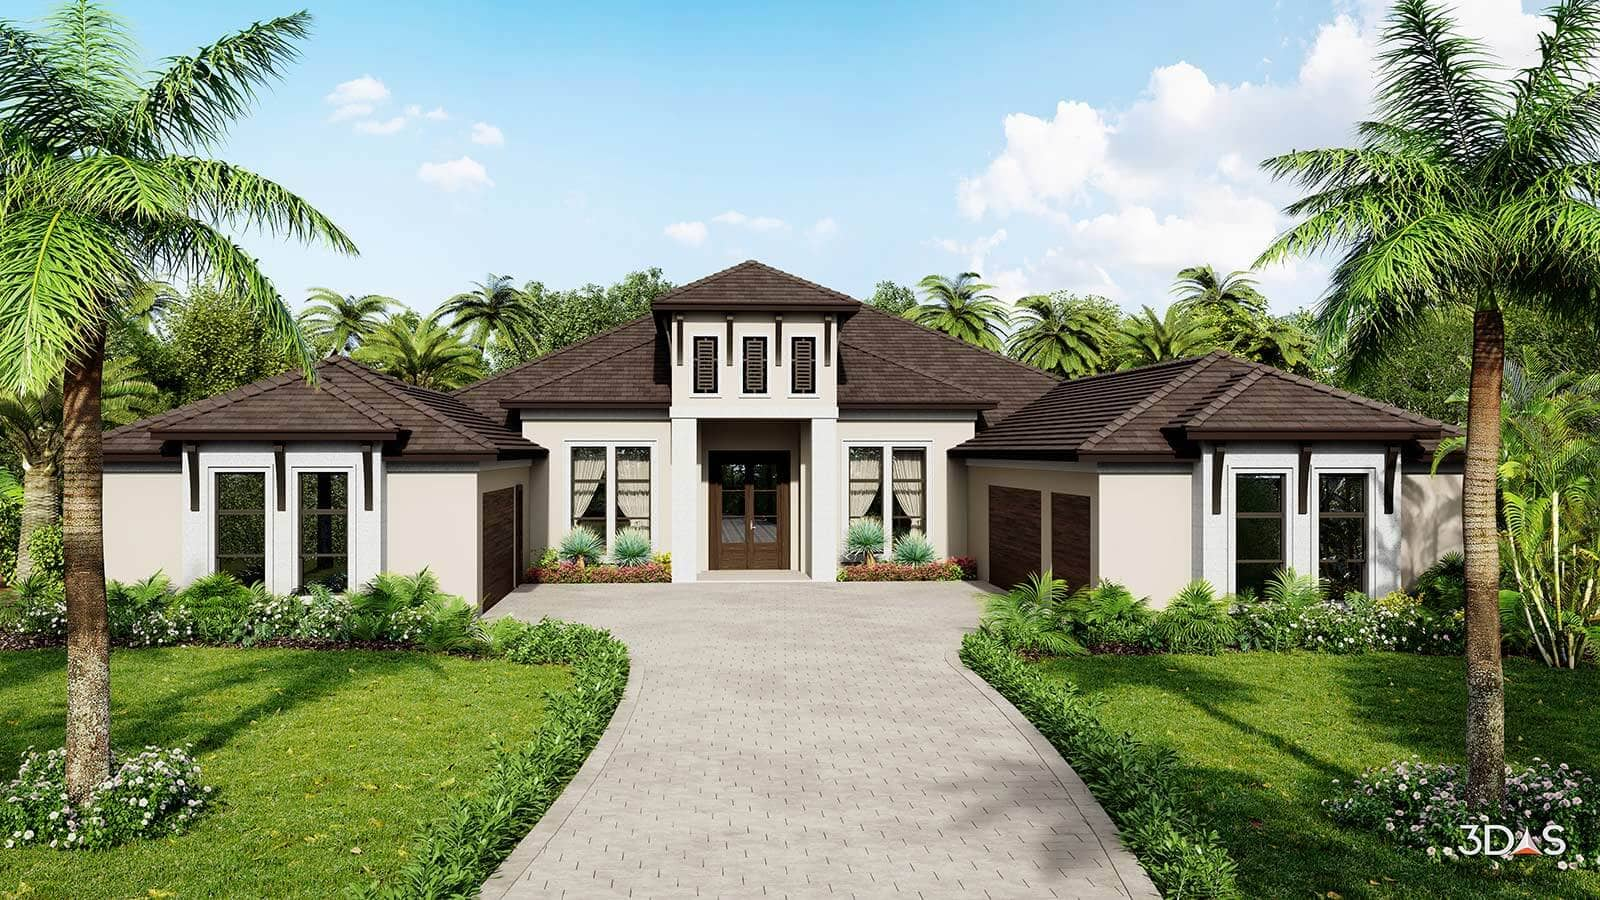 Residence Located in Bradenton, Florida. 3D Rendering by 3DAS.